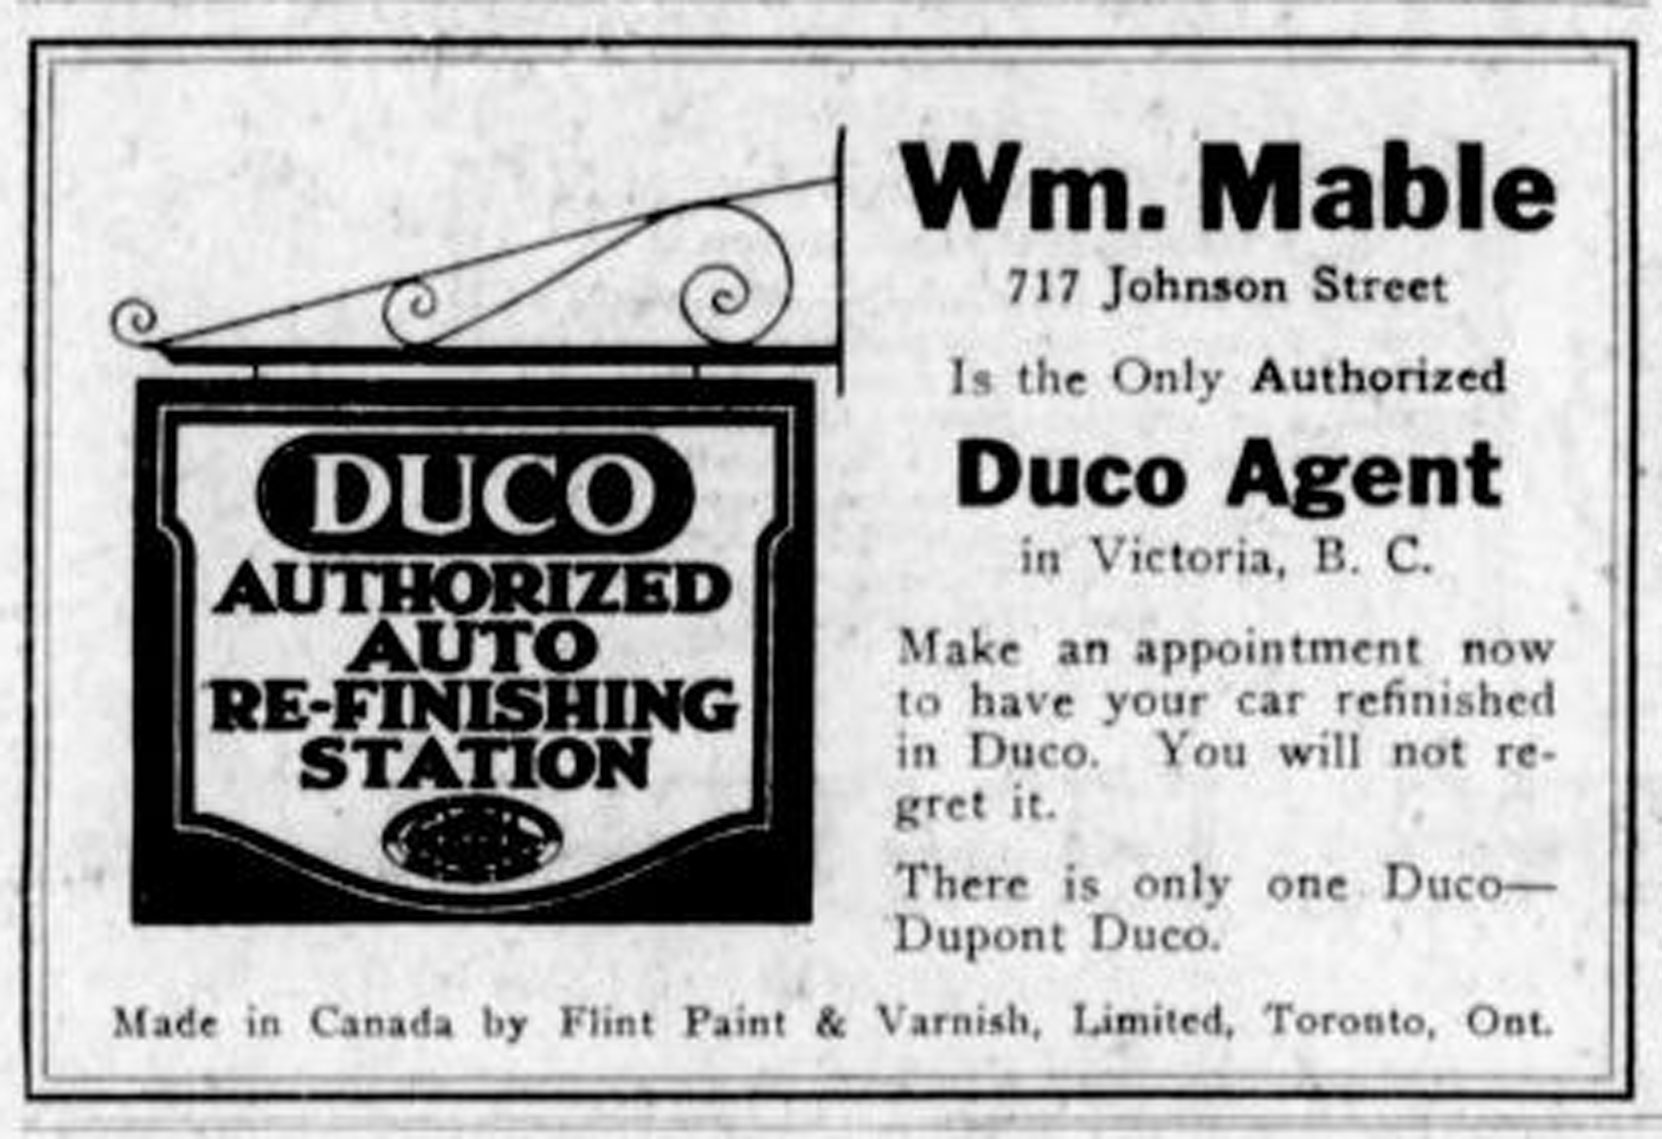 1926 advertisement for William Mable, 717 Johnson Street, Victoria, BC. William Mable was a member of Victoria-Columbia Lodge No. 1 in Victoria. (Temple Lodge No. 33 Historian)